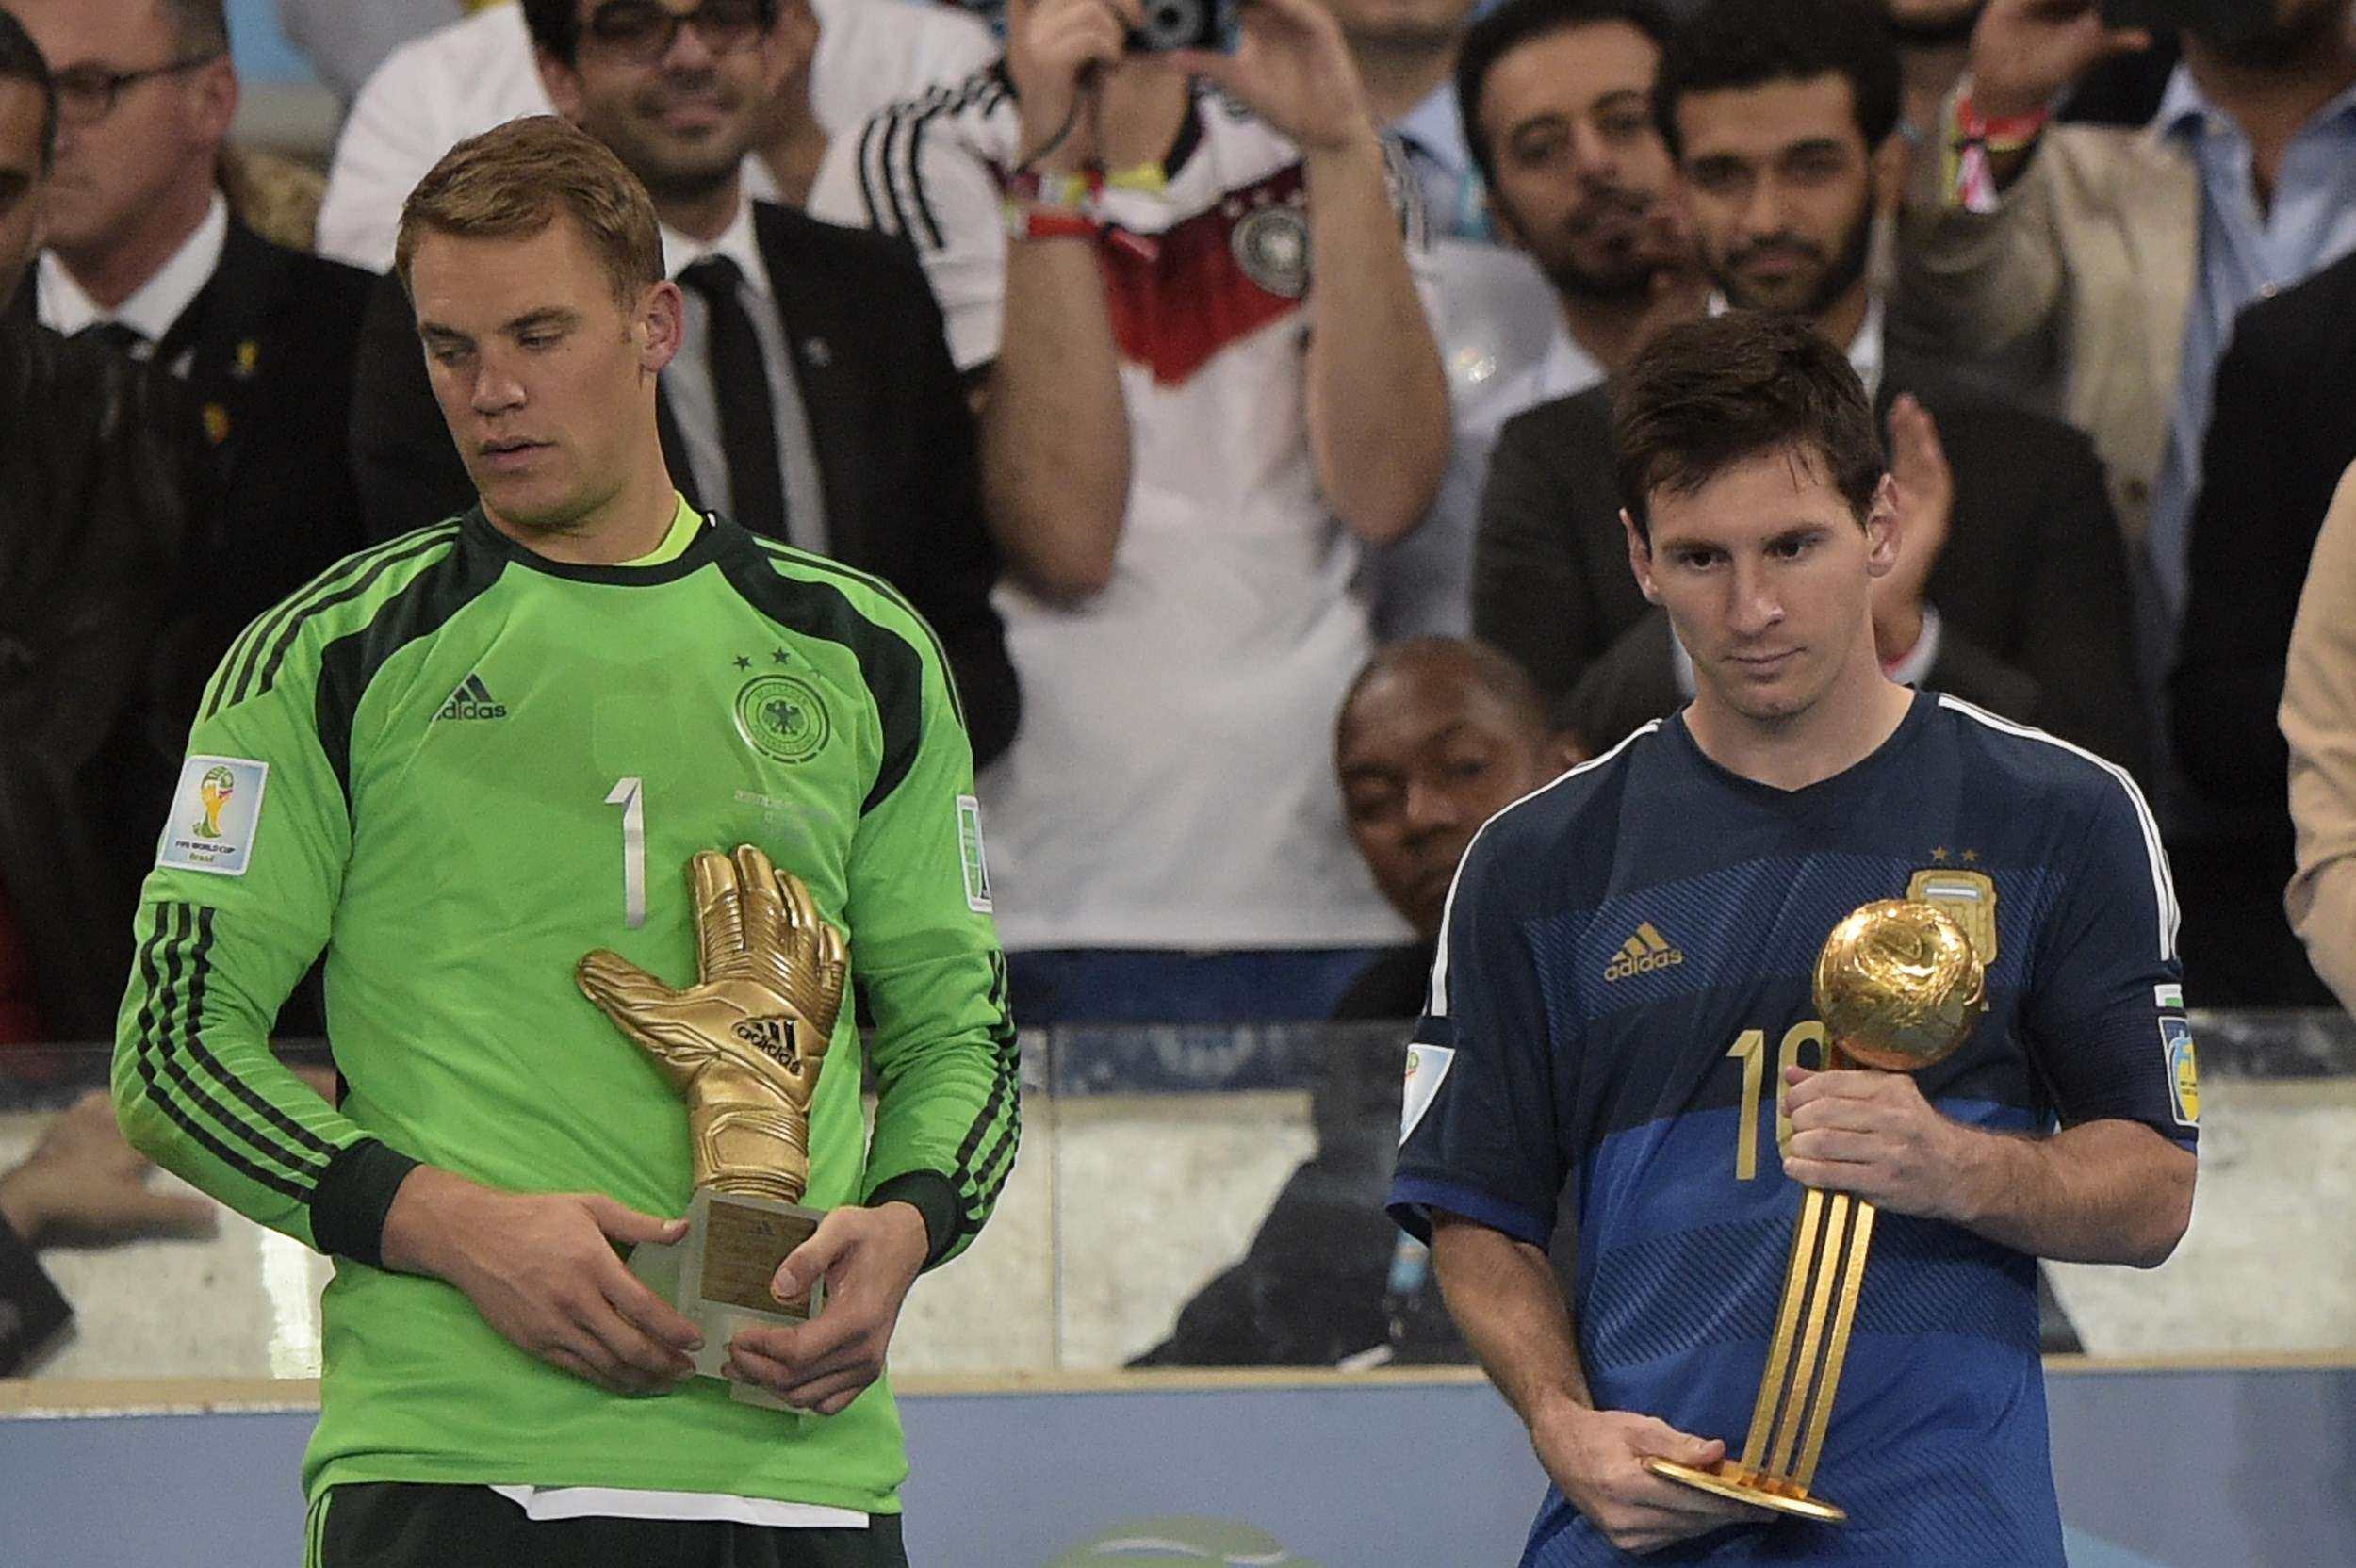 Messi wins the Golden Ball despite final loss